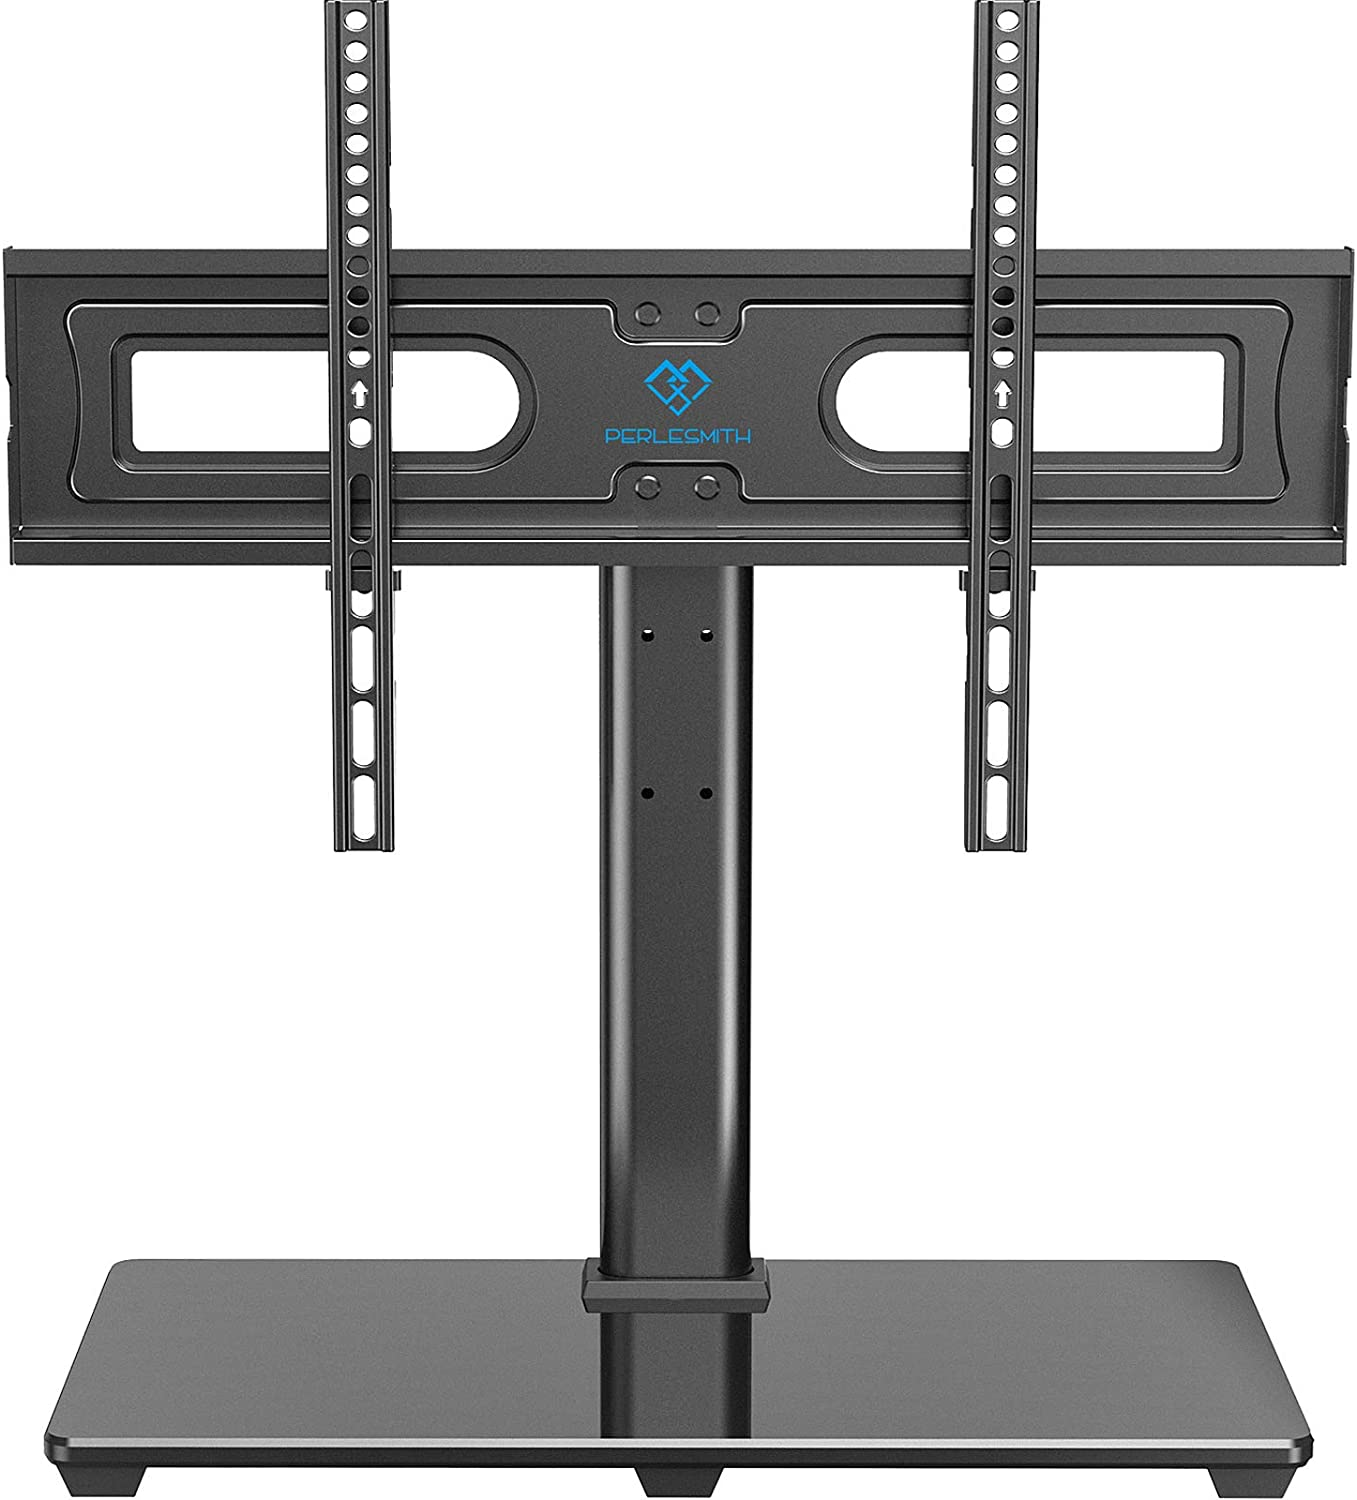 Amazon Com Perlesmith Universal Tv Stand Table Top Tv Base For 37 To 70 Inch Lcd Led Oled 4k Flat Screen Tvs Height Adjustable Tv Mount Stand With Tempered Glass Base Vesa